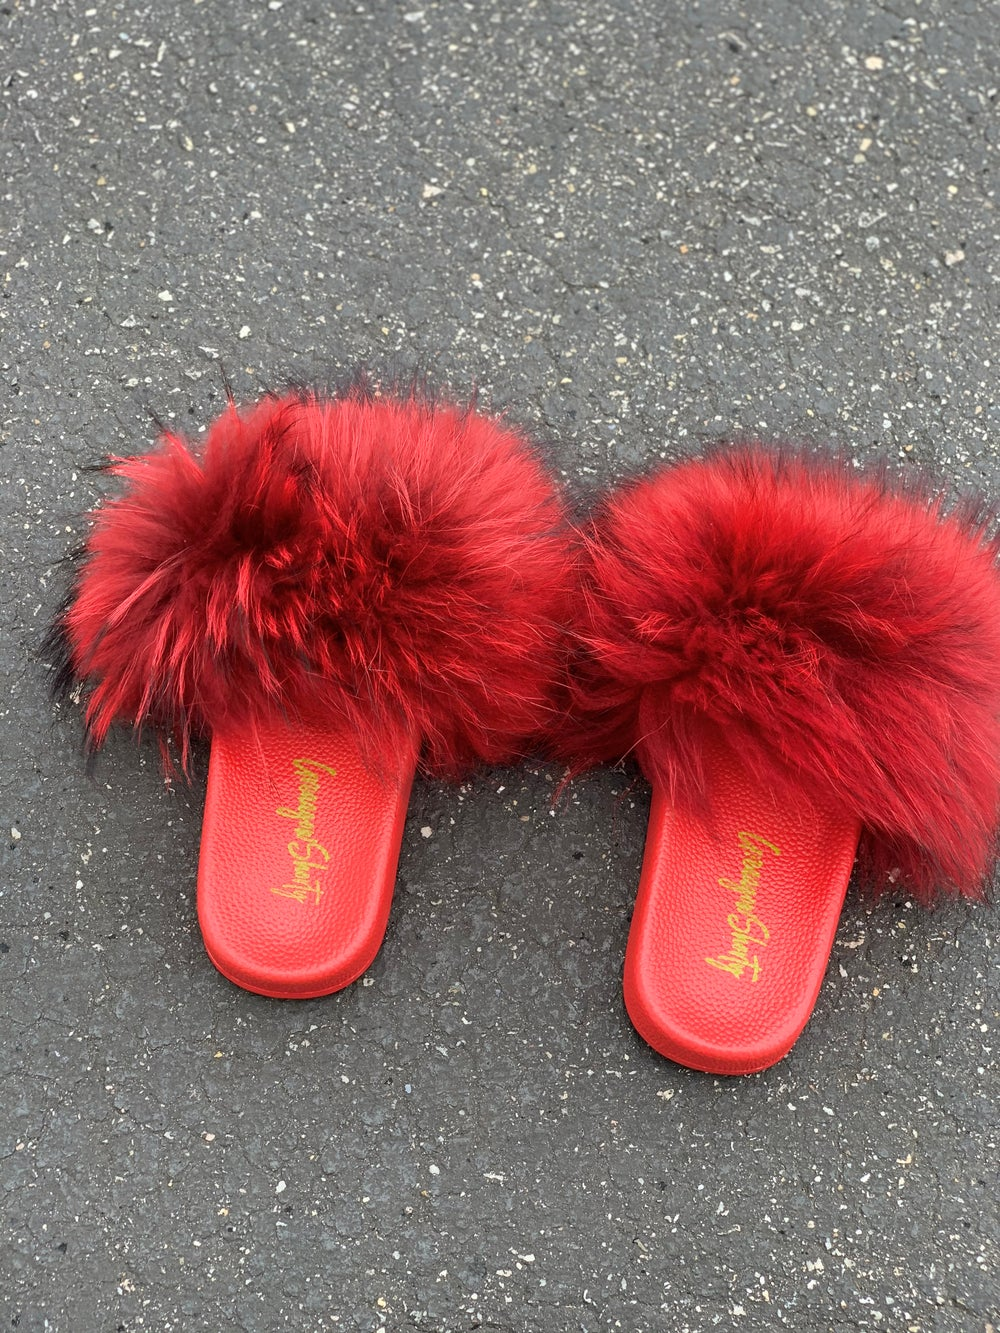 Image of Bloody Shoes